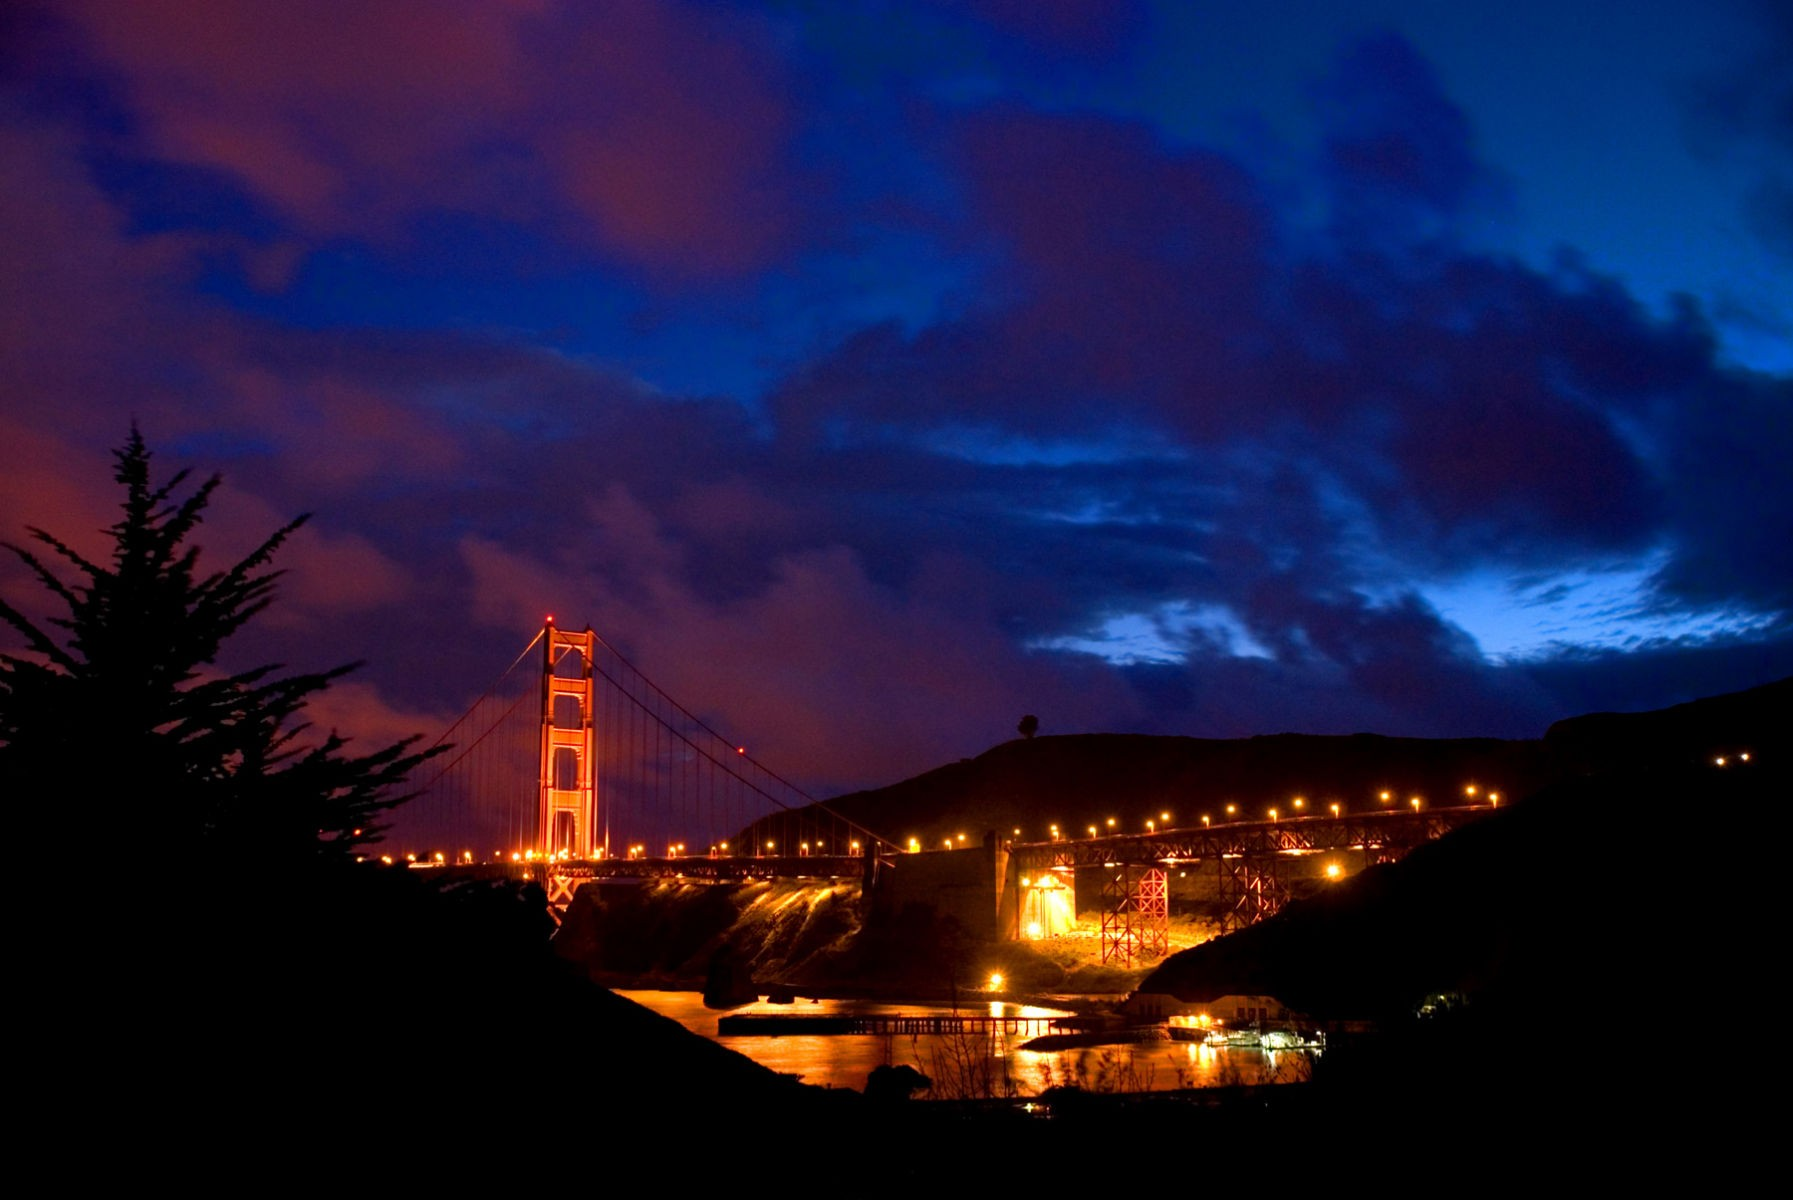 Golden Gate Bridge Evening after a Storm